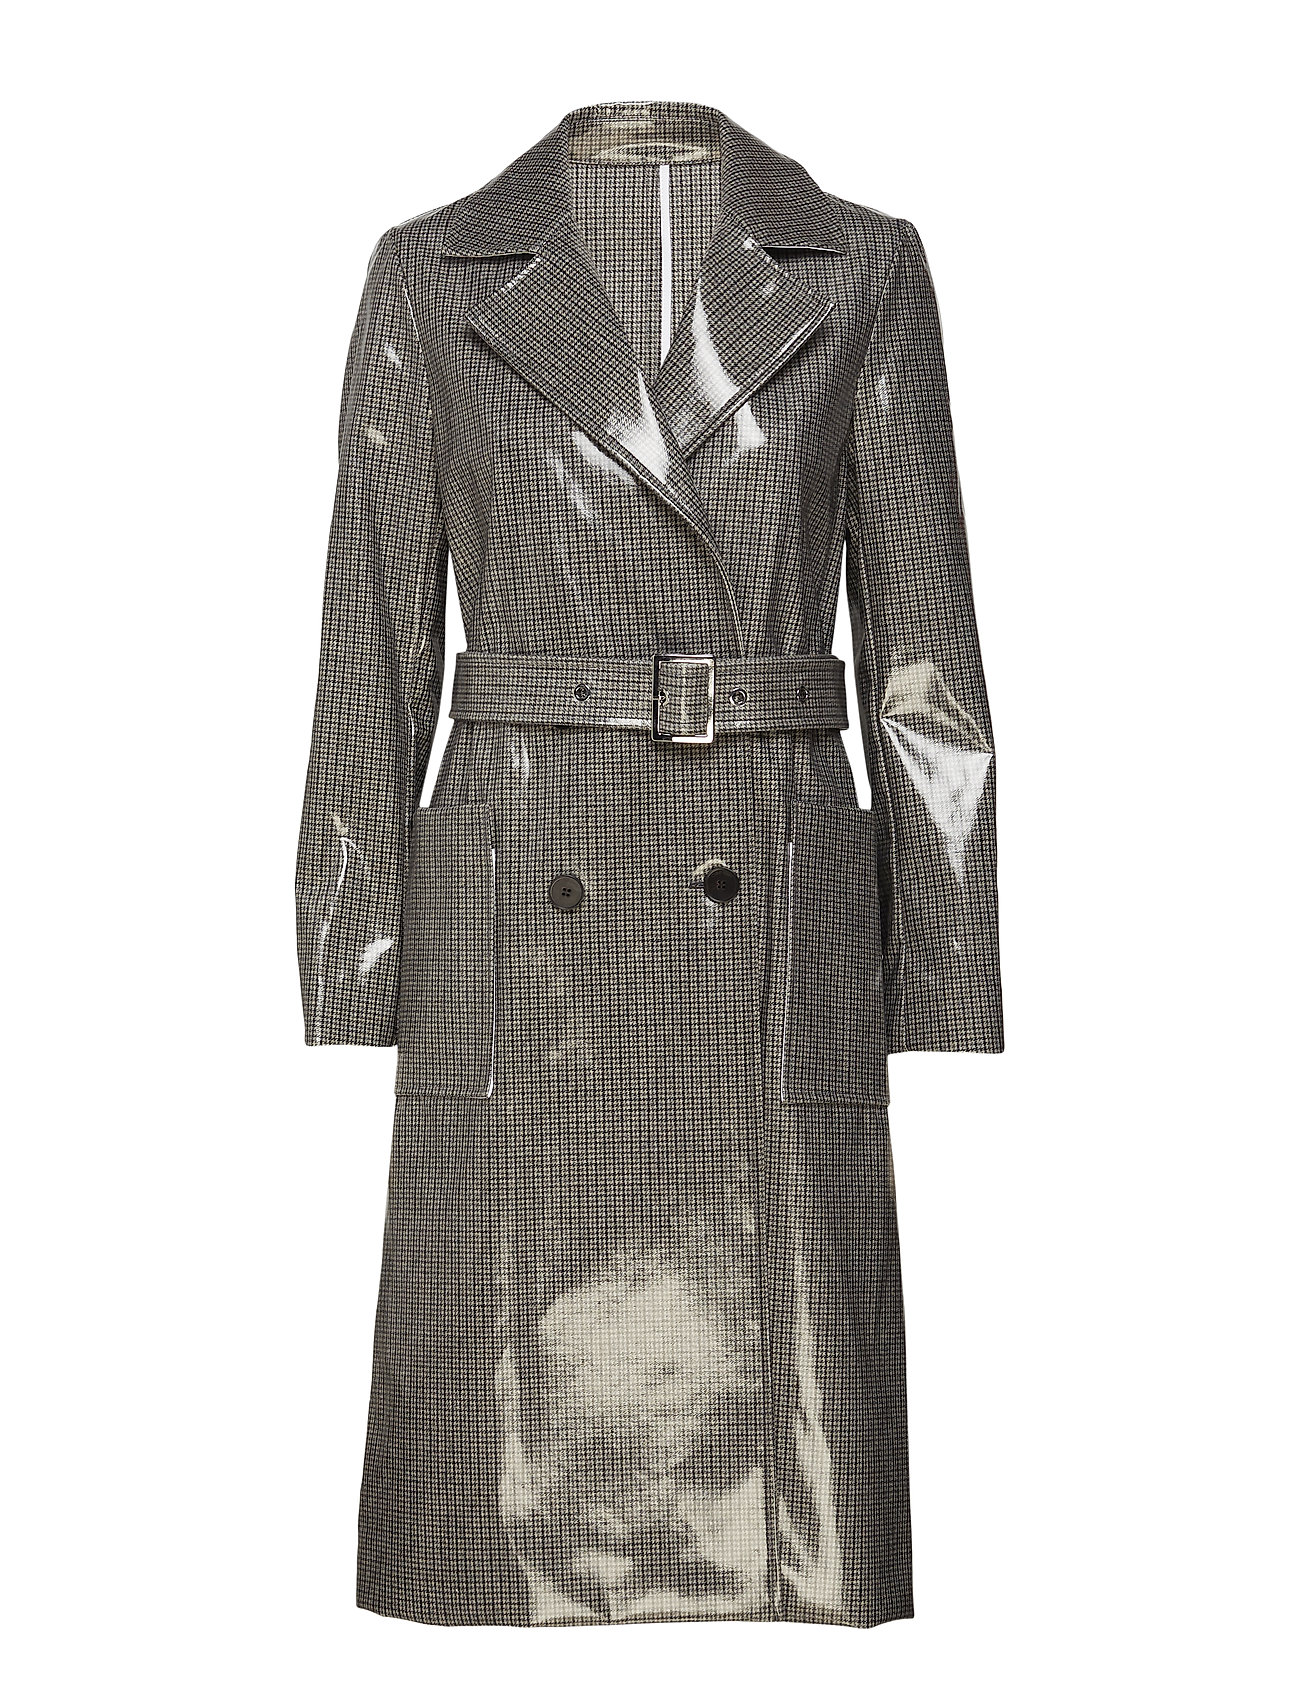 Calvin Klein COATED LONG TRENCH C - LAMINATED CHECK